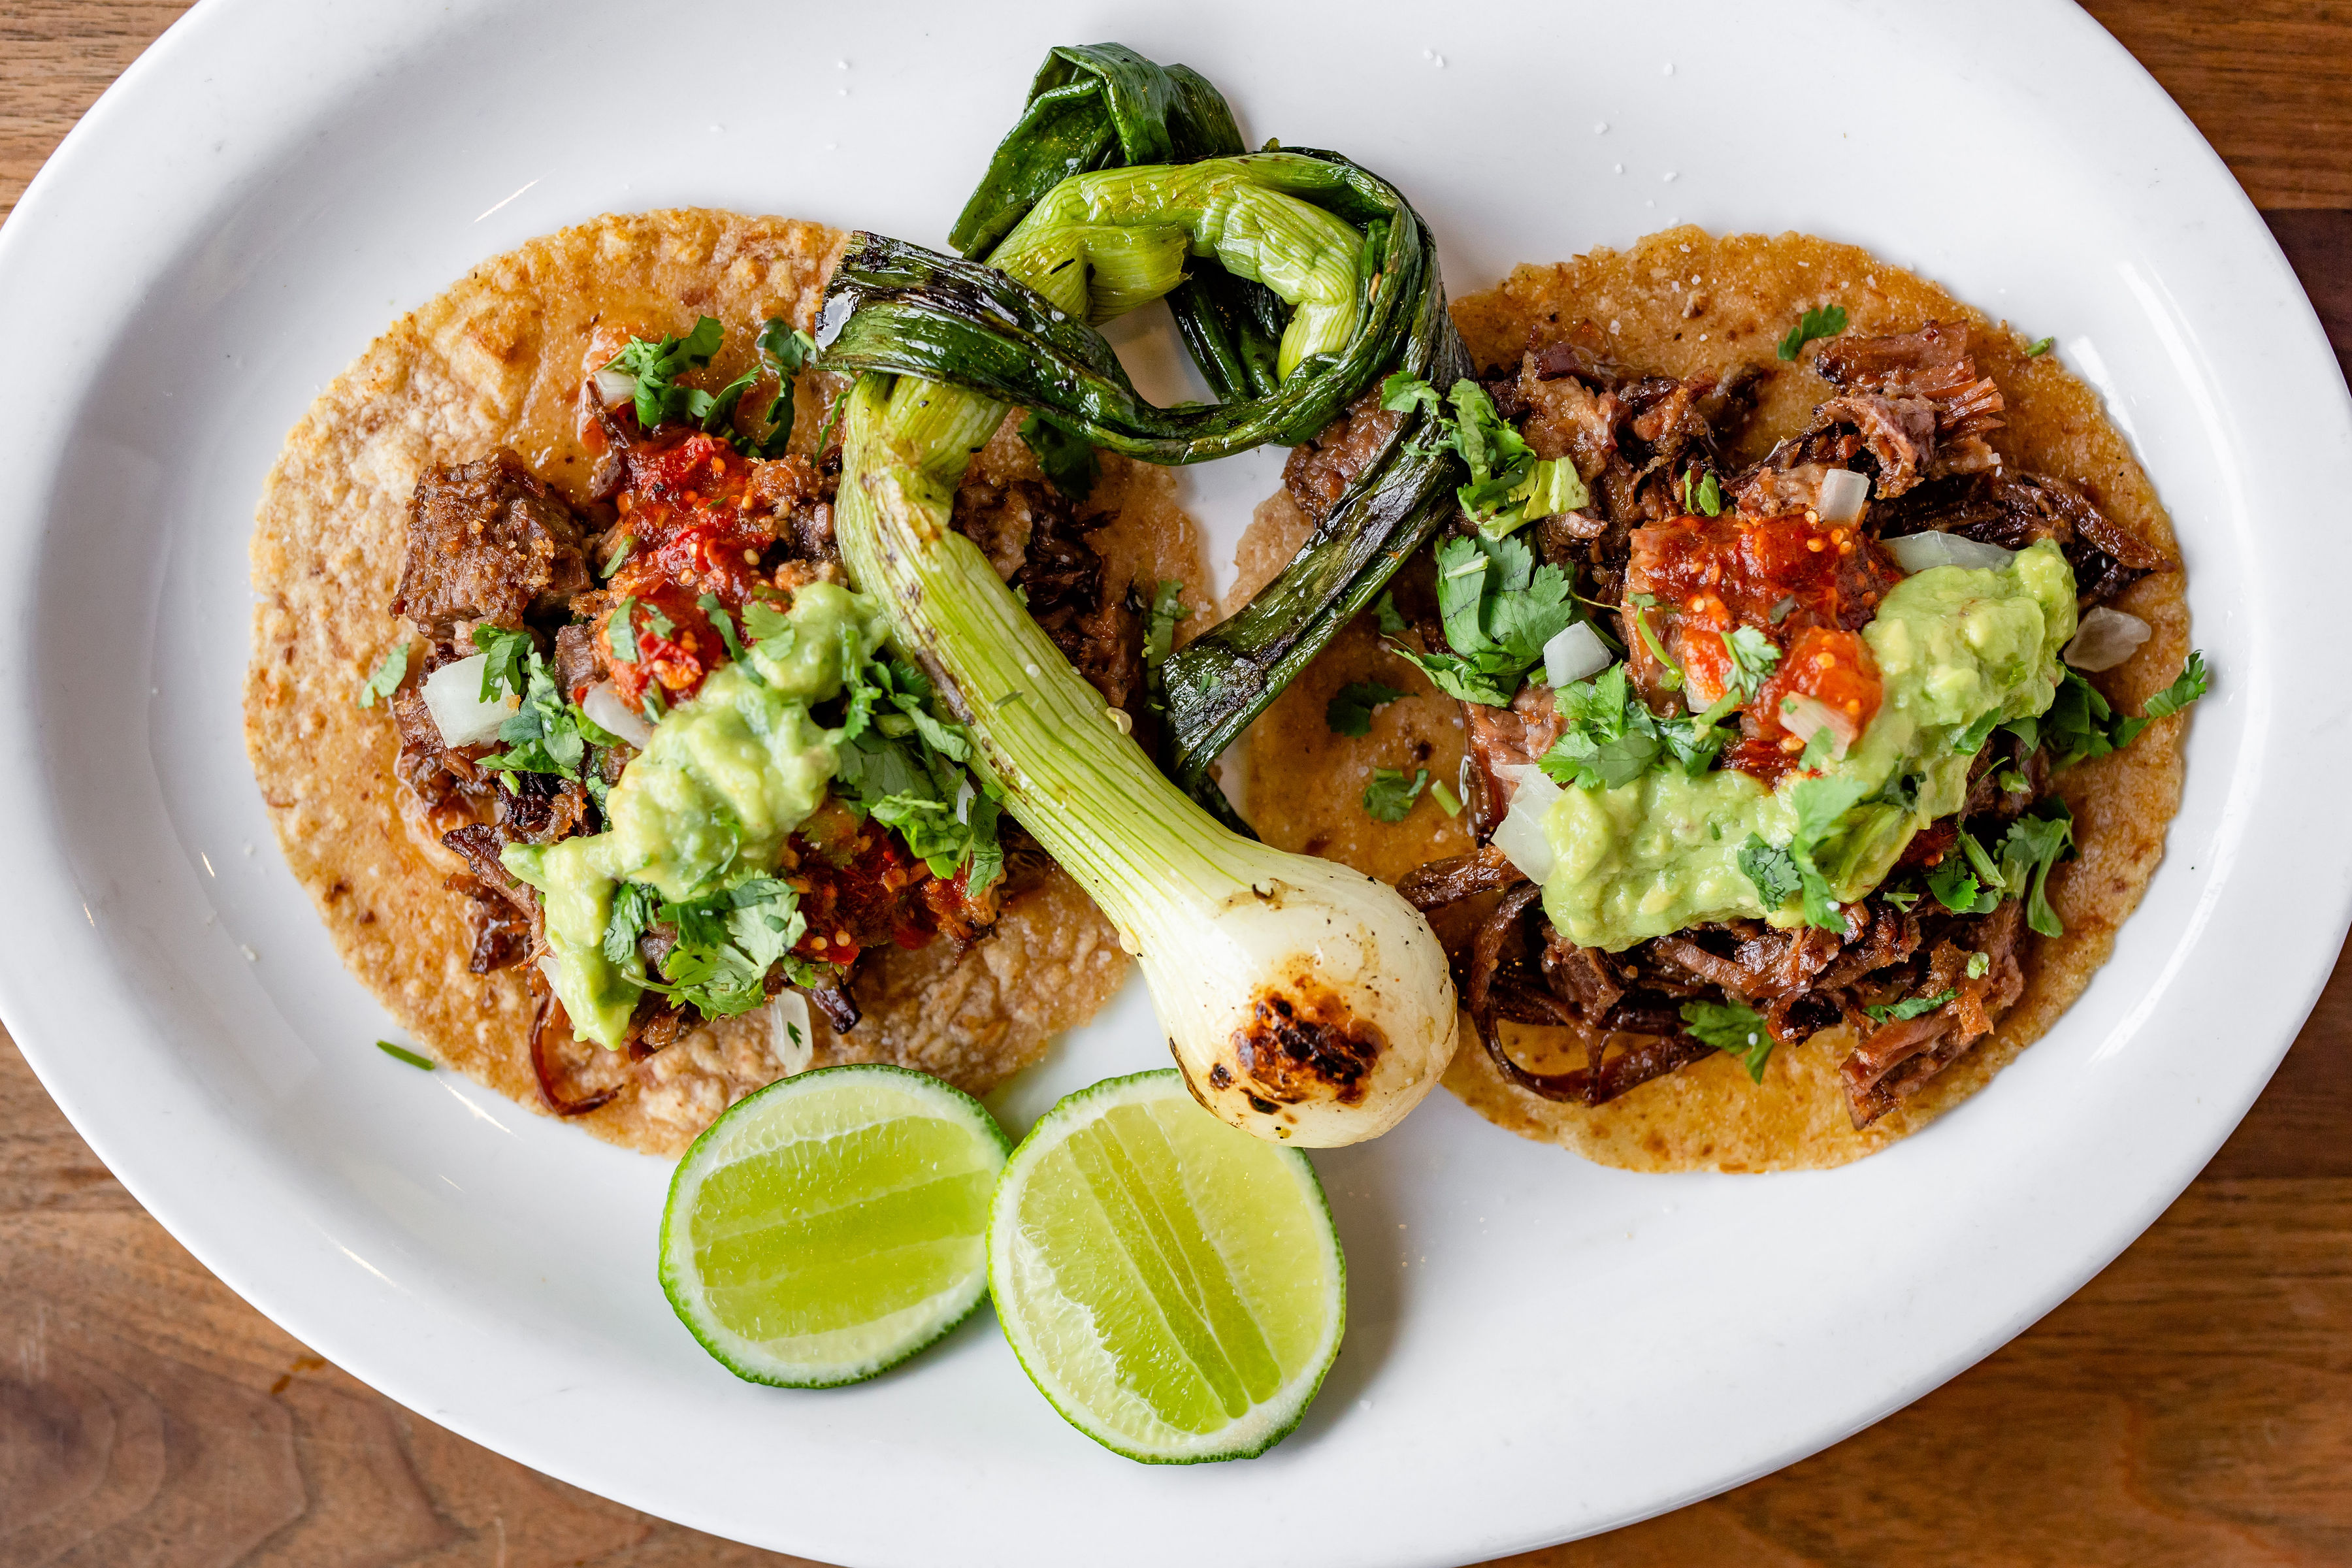 Two tacos and grilled spring onion